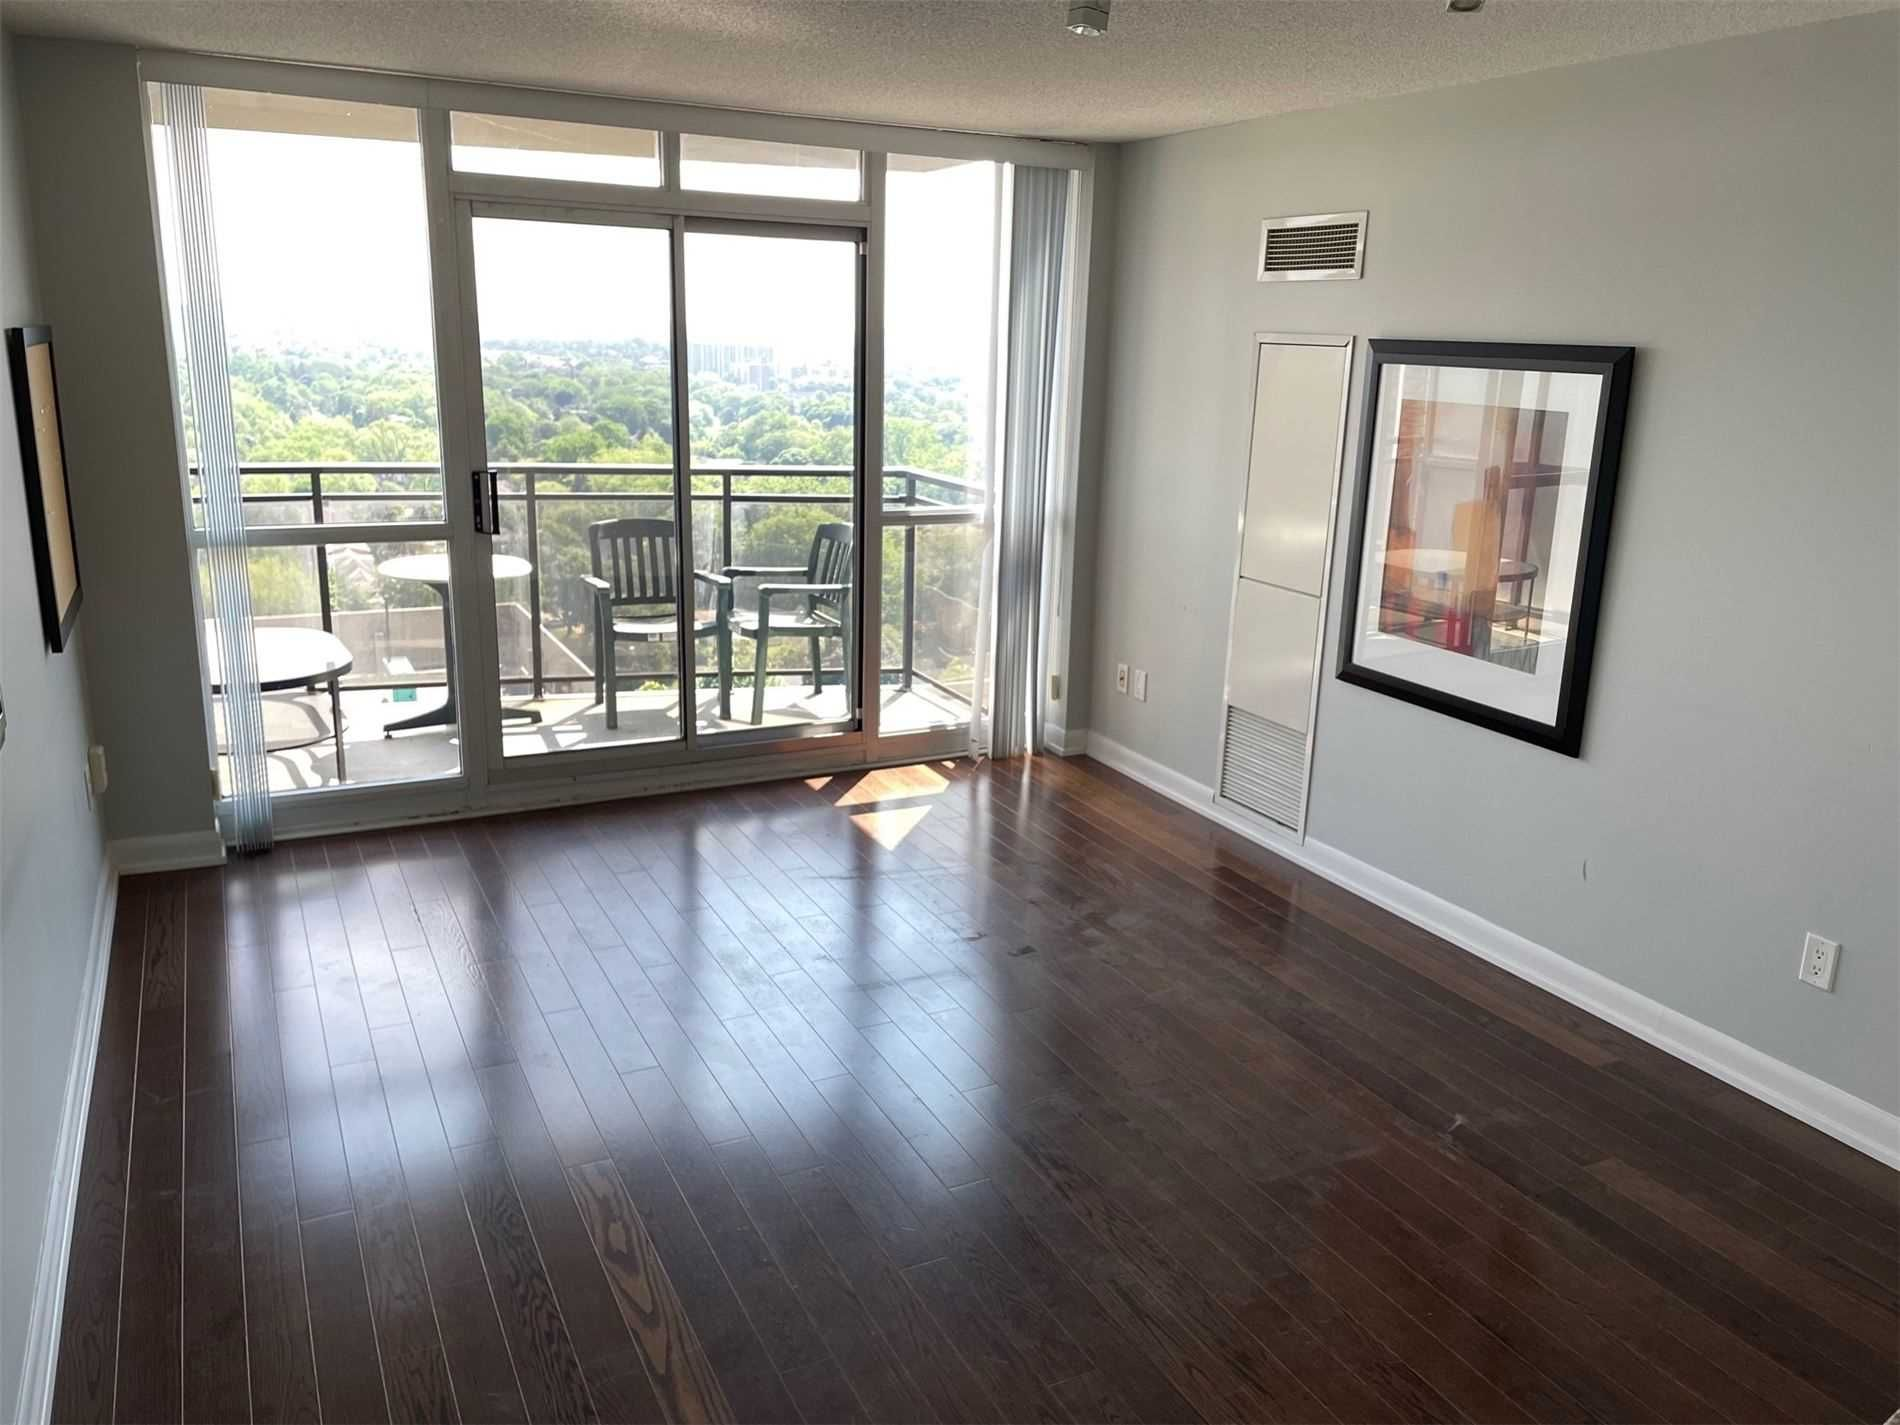 33 Sheppard Ave E, unit 2001 for rent in Toronto - image #2